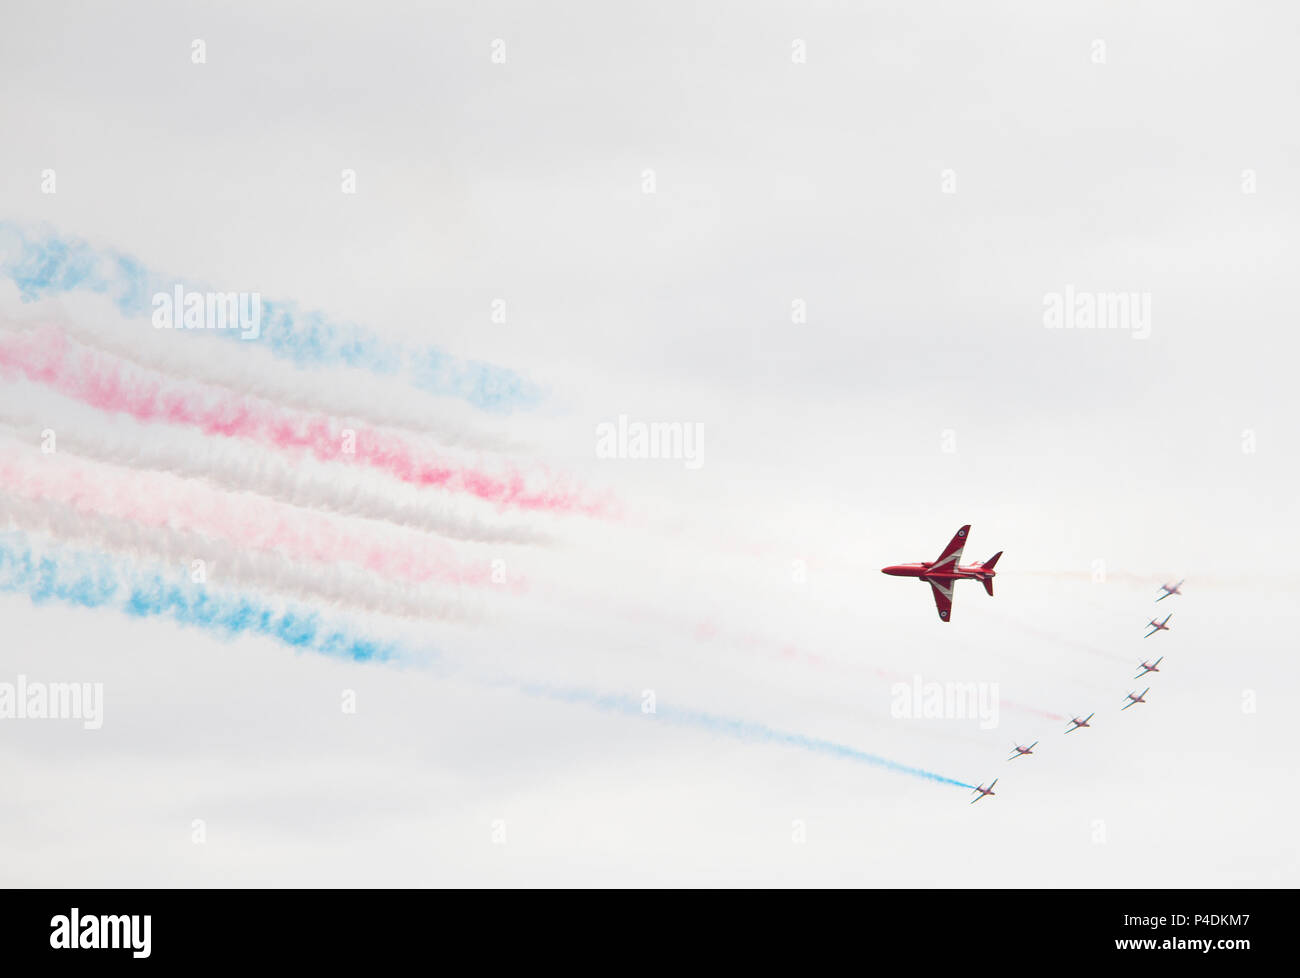 GREAT YARMOUTH, NORFOLK, ENGLAND - June 17, 2018: The Red Arrows RAF display team paint the sky in patriotic colours at Great Yarmouth's first air sho Stock Photo